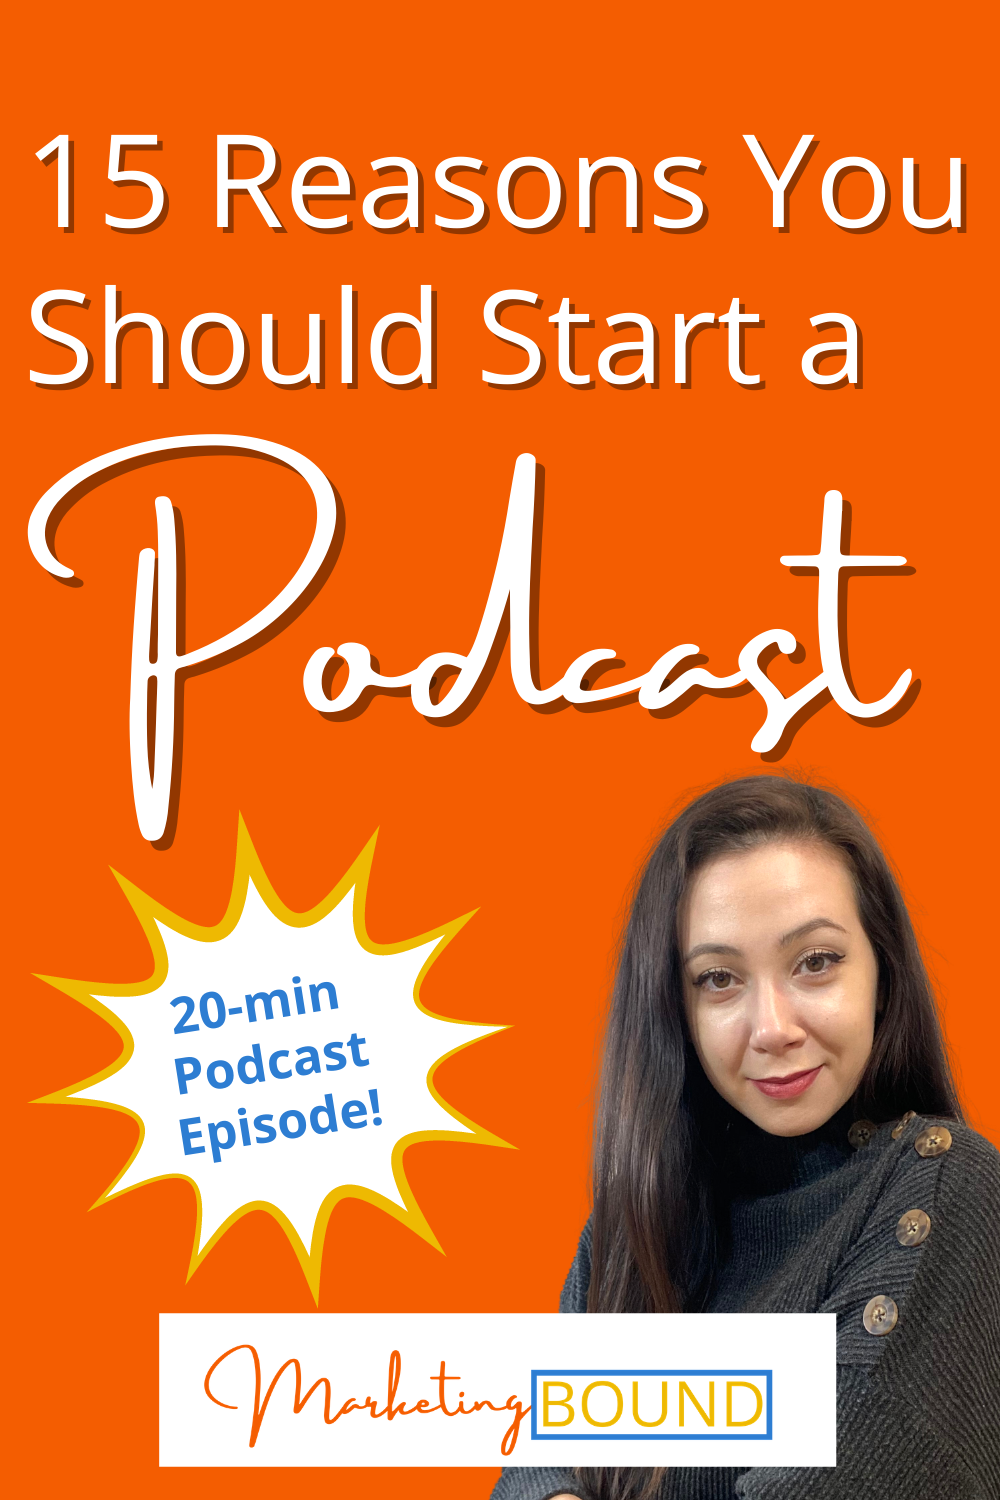 15 reasons to start a podcast